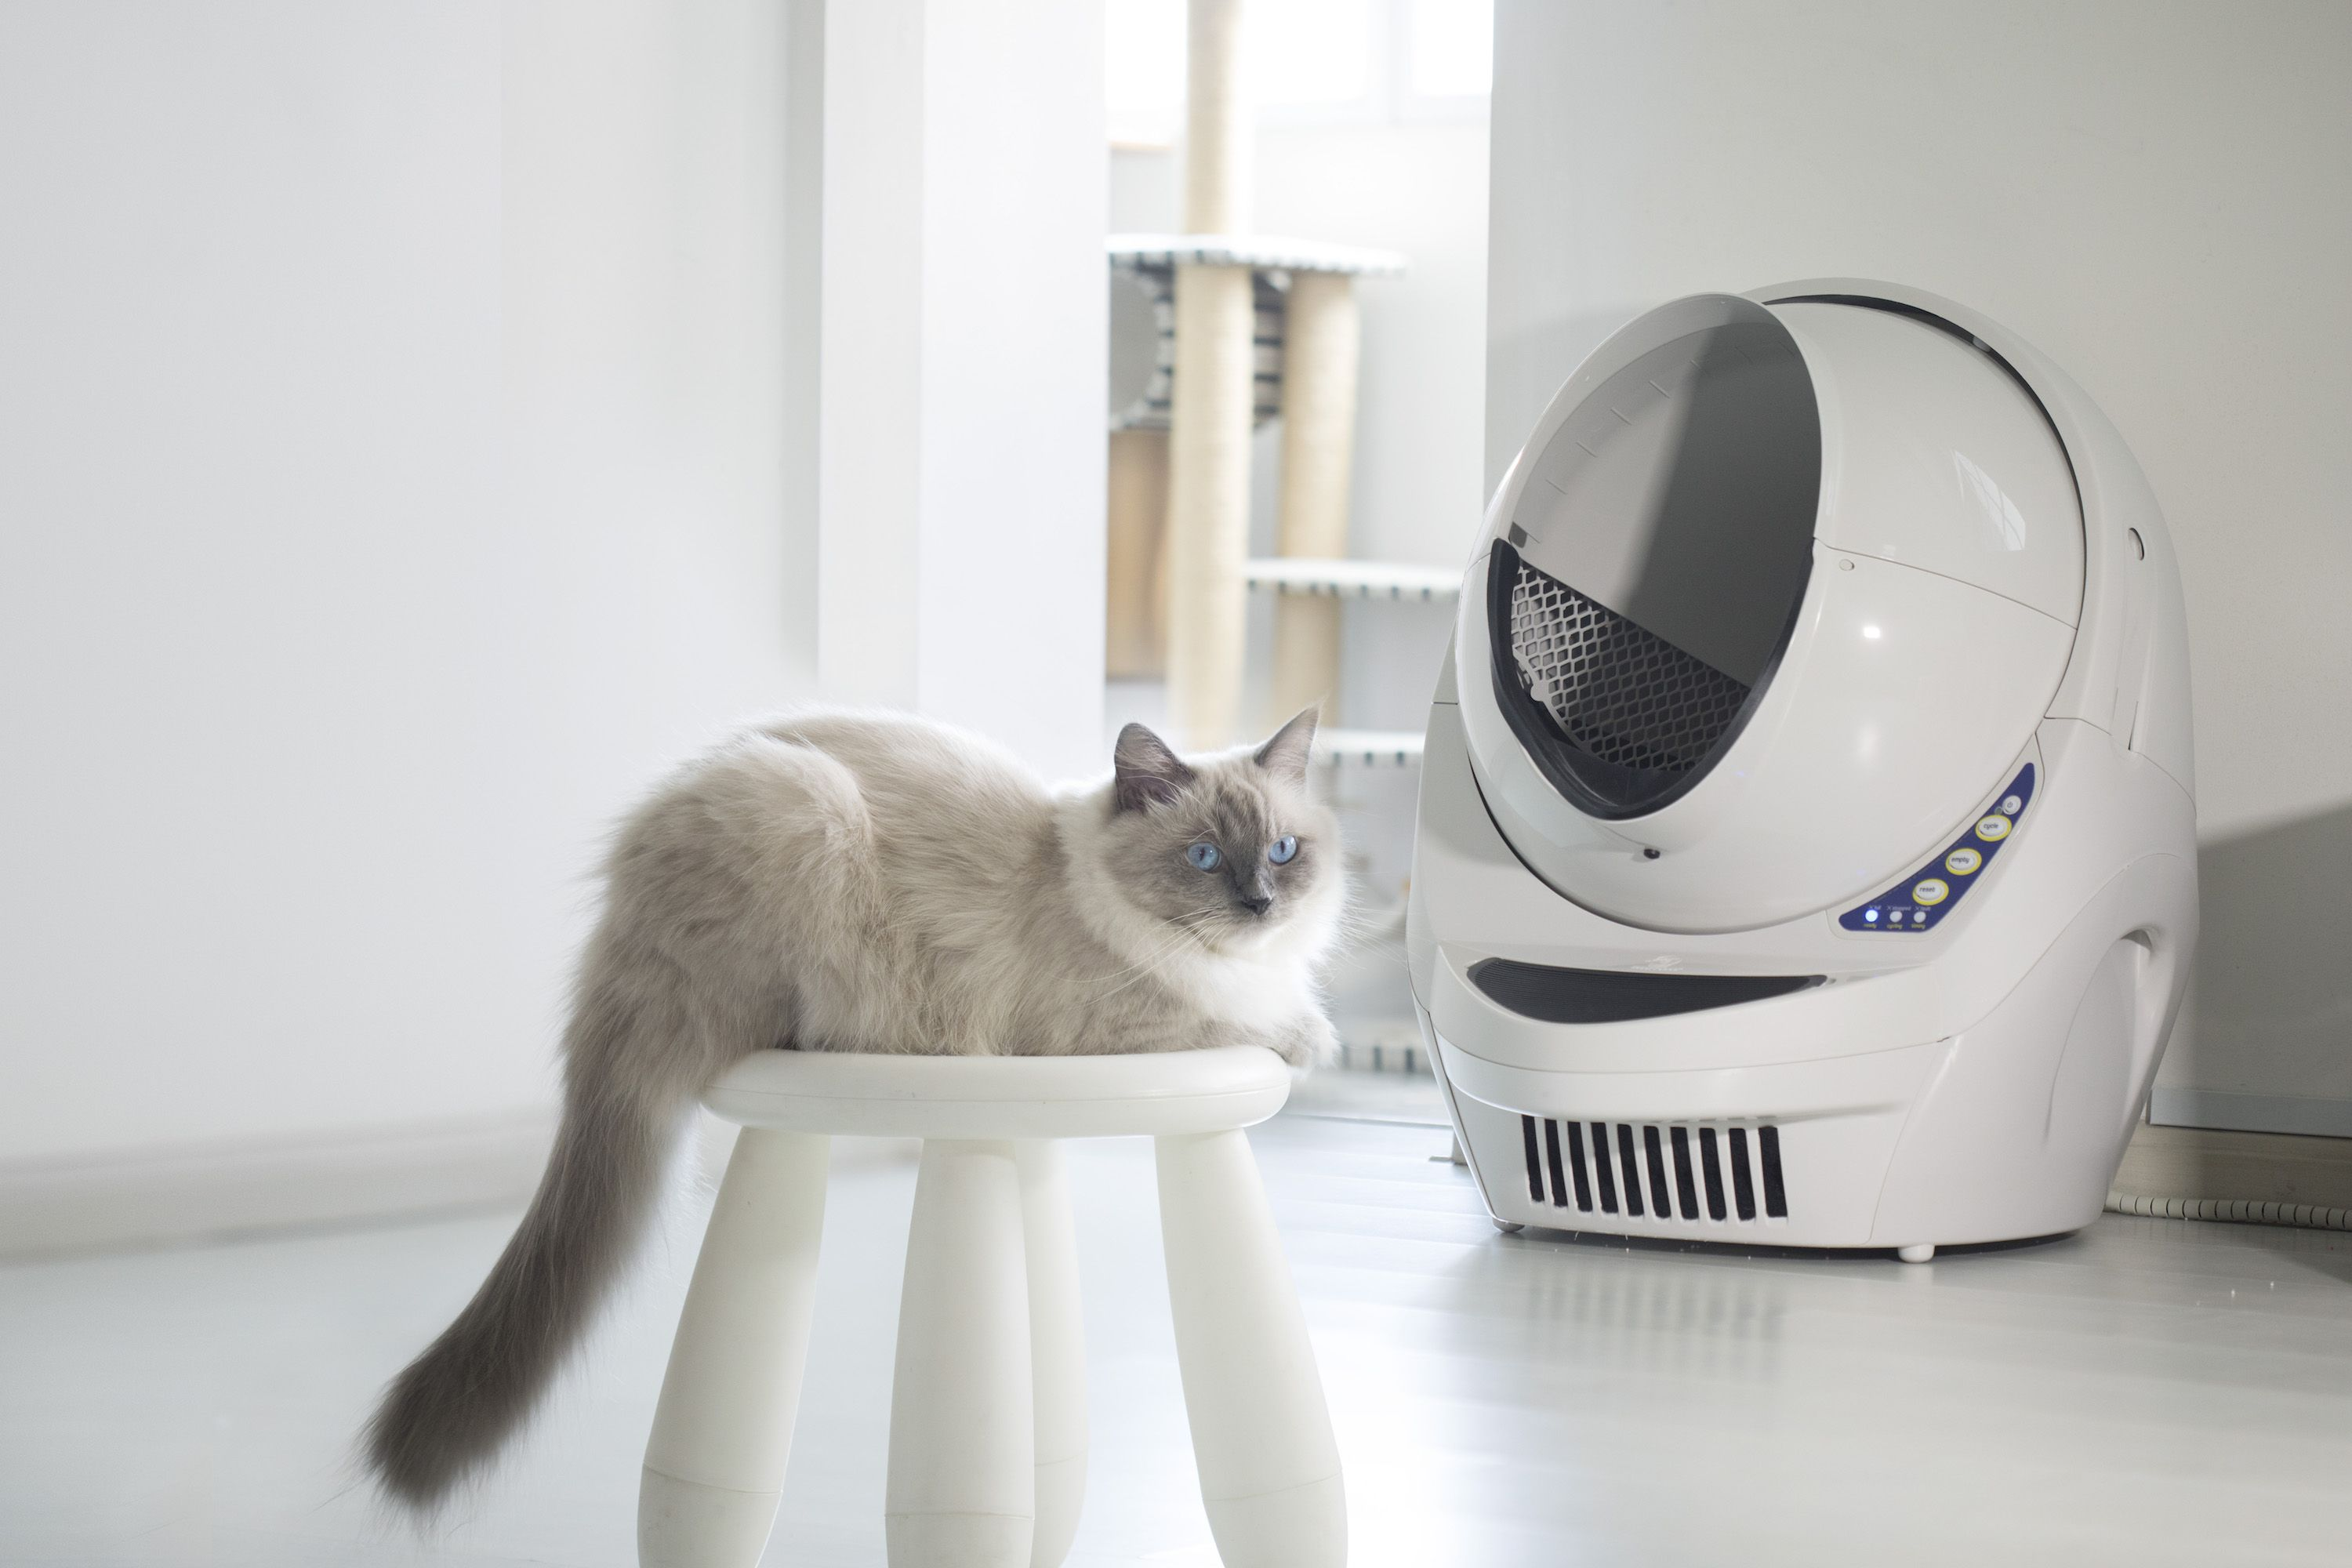 Pin by LitterRobot on Picture Purrfect Self cleaning